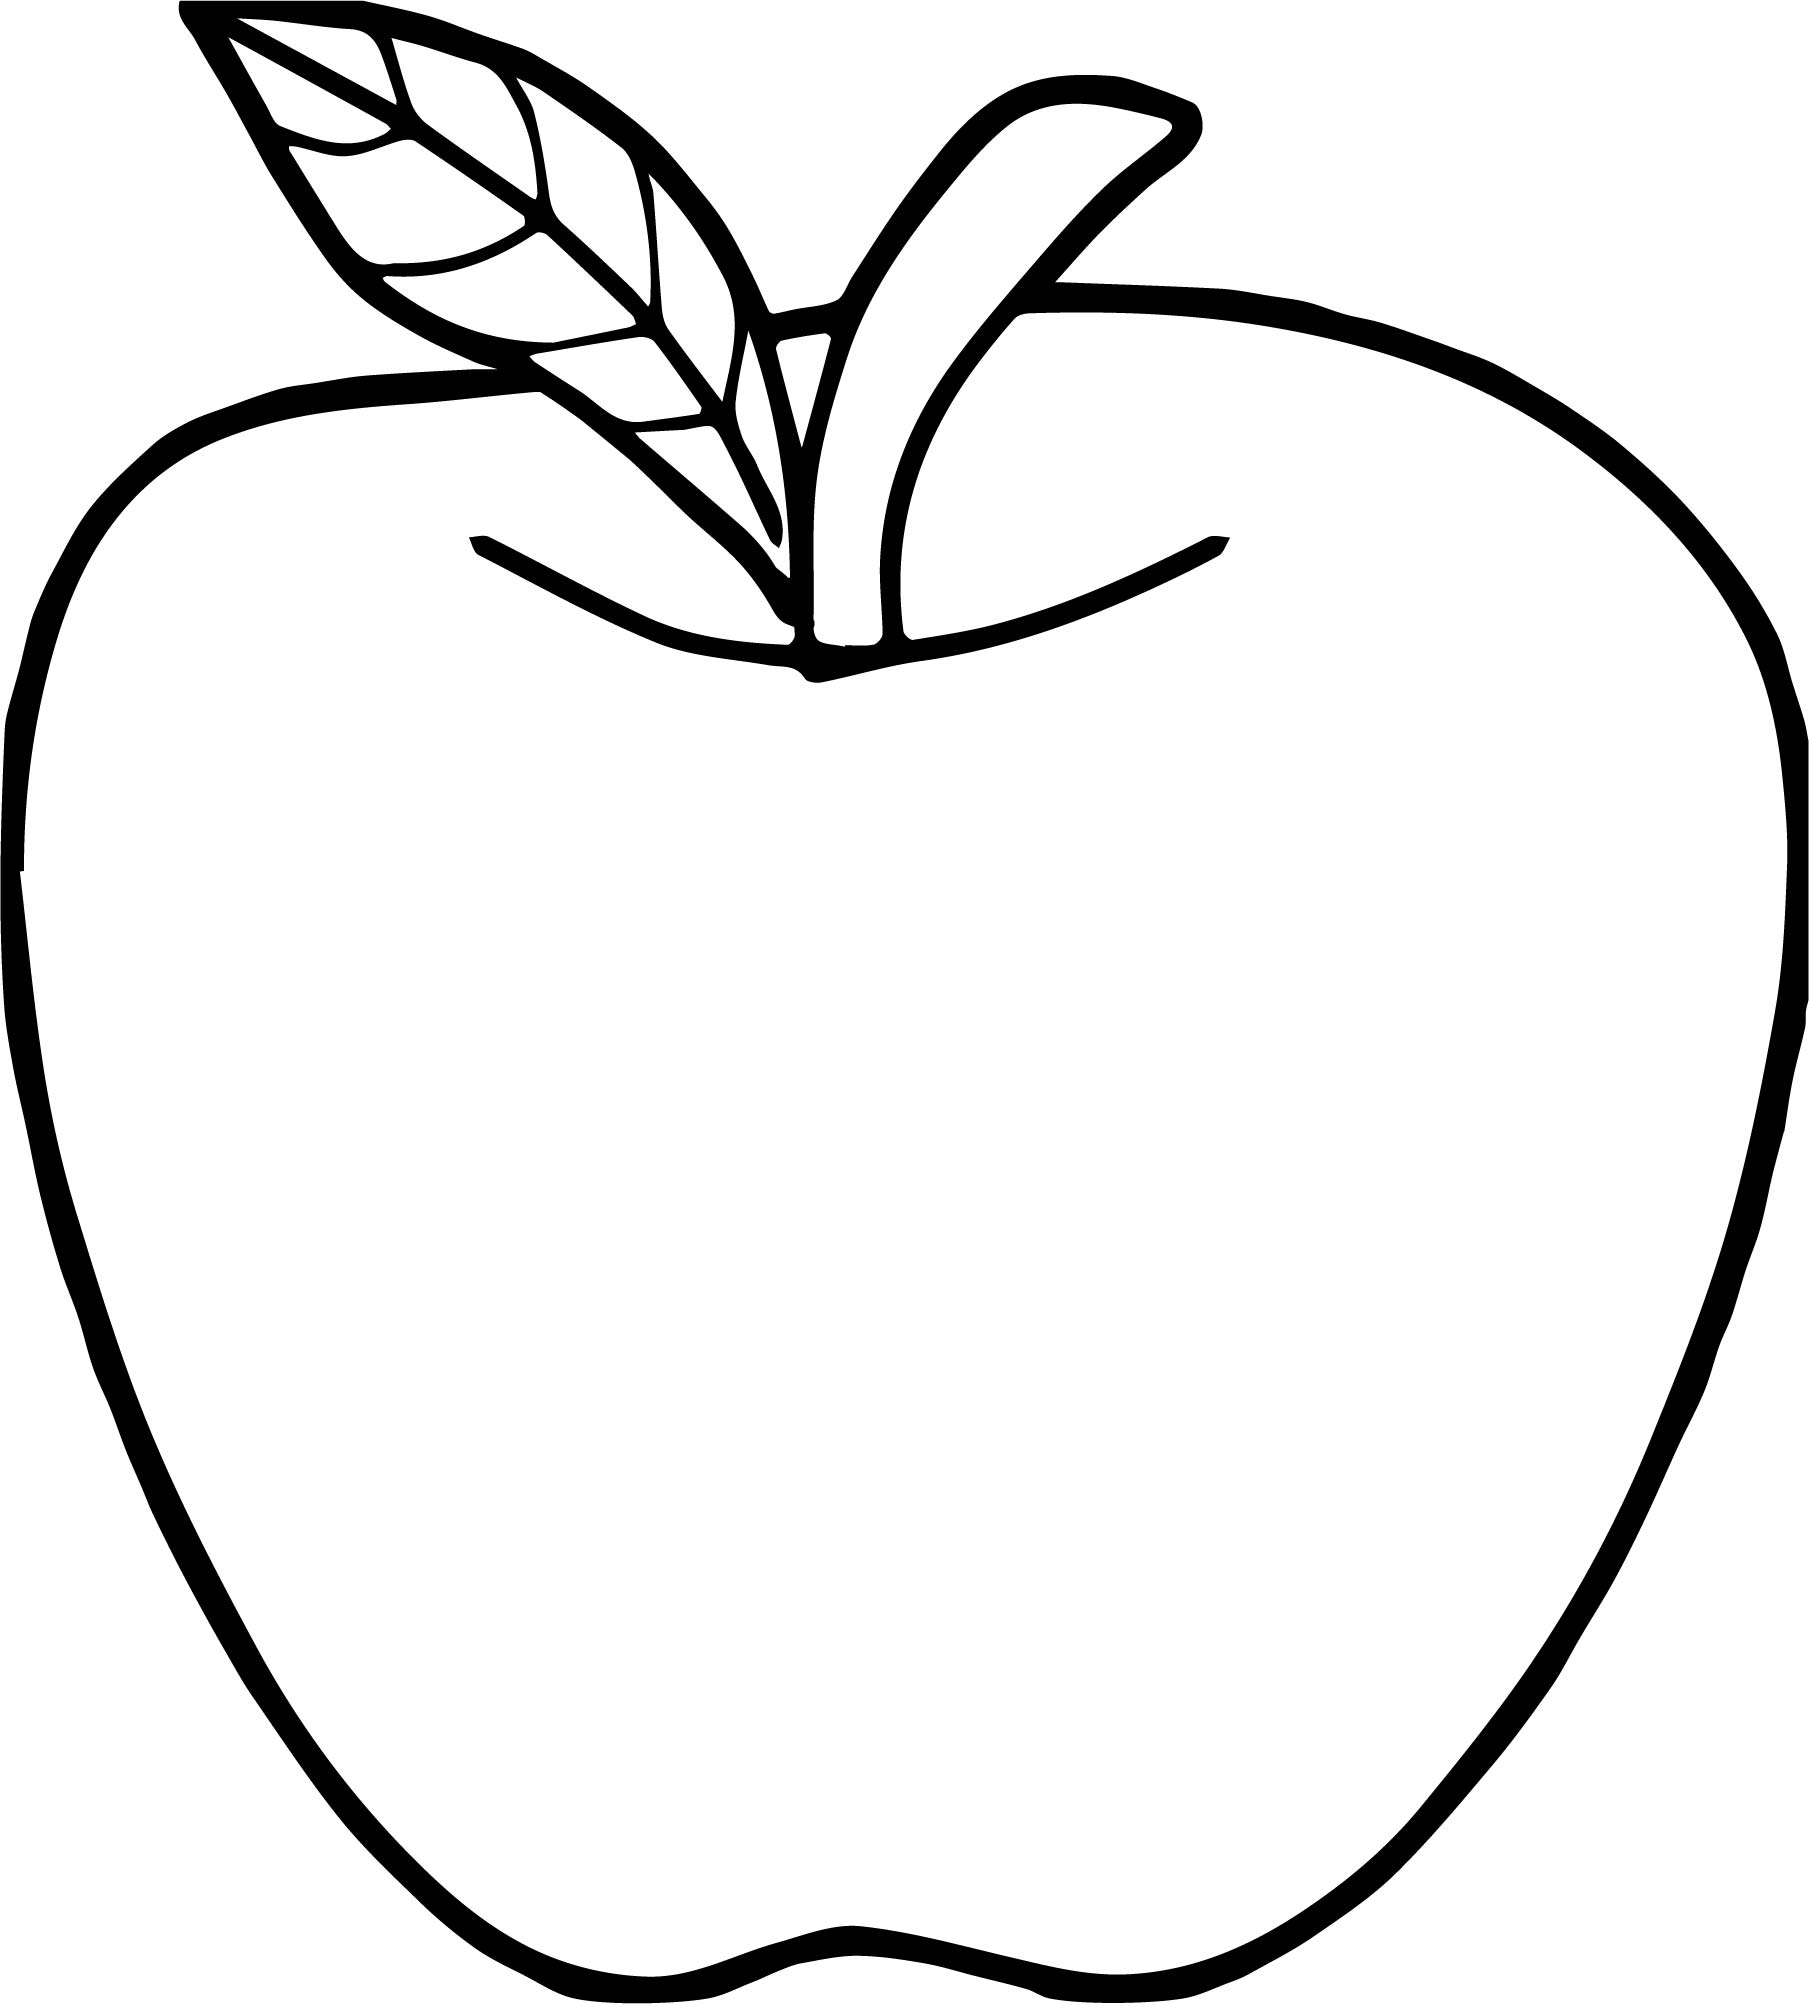 pictures of apples to color coloring pages for kids apple coloring pages for kids apples pictures of to color